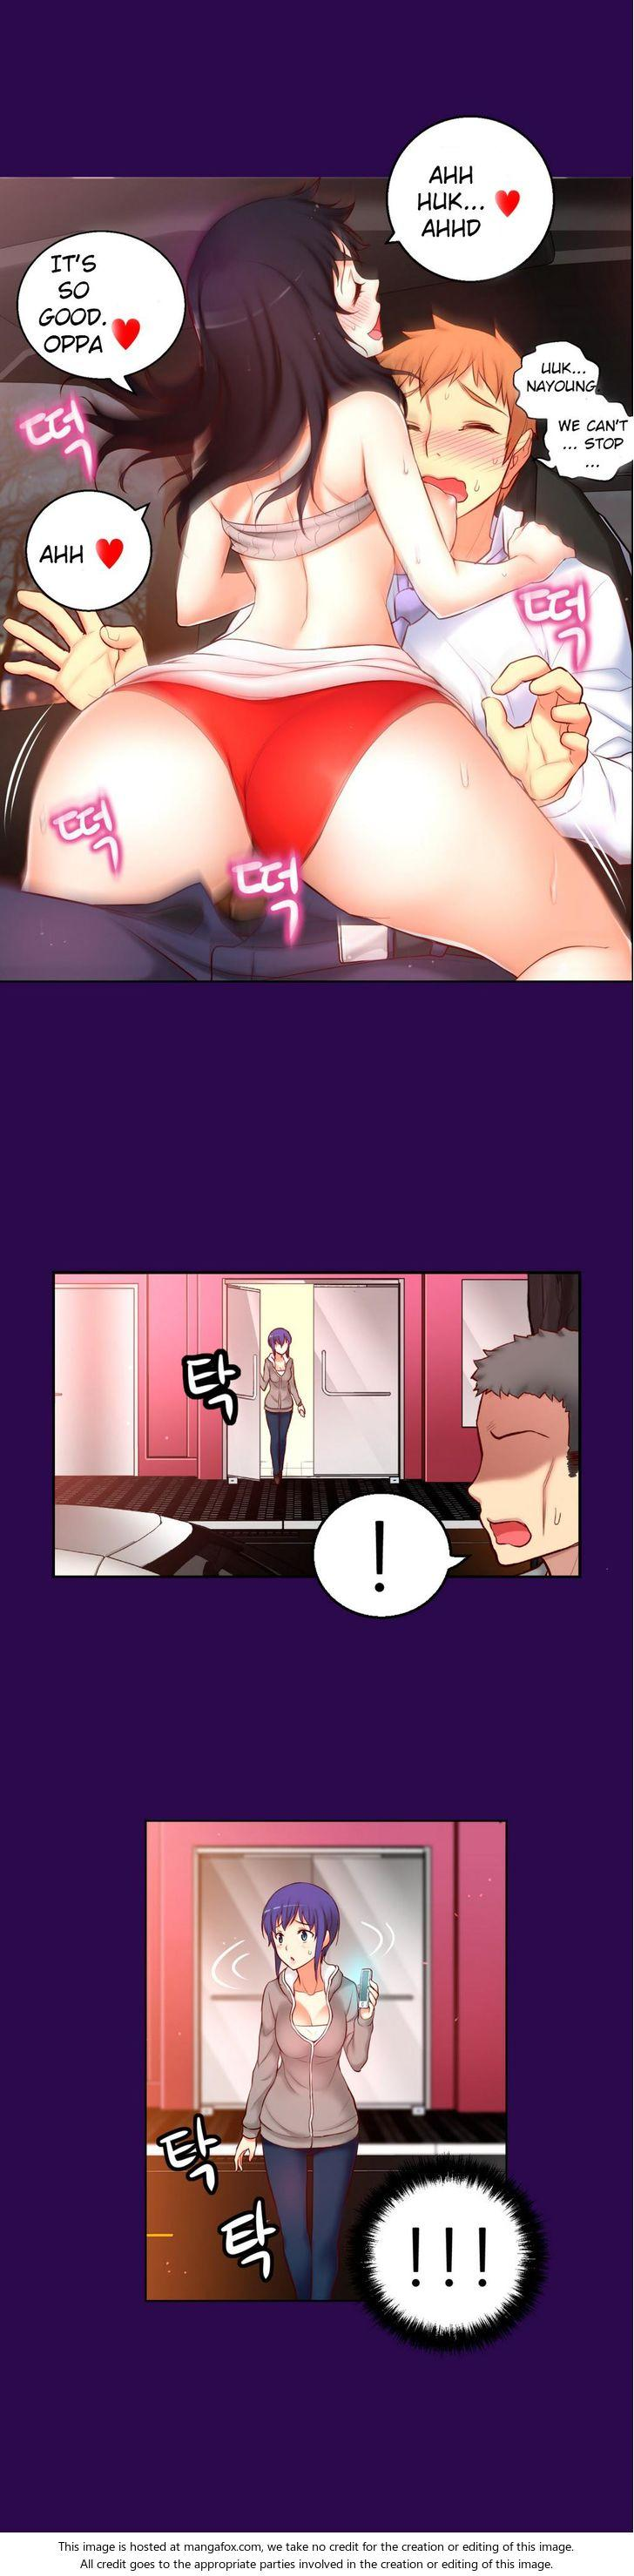 [Donggul Gom] She is Young (English) Part 1/2 1201